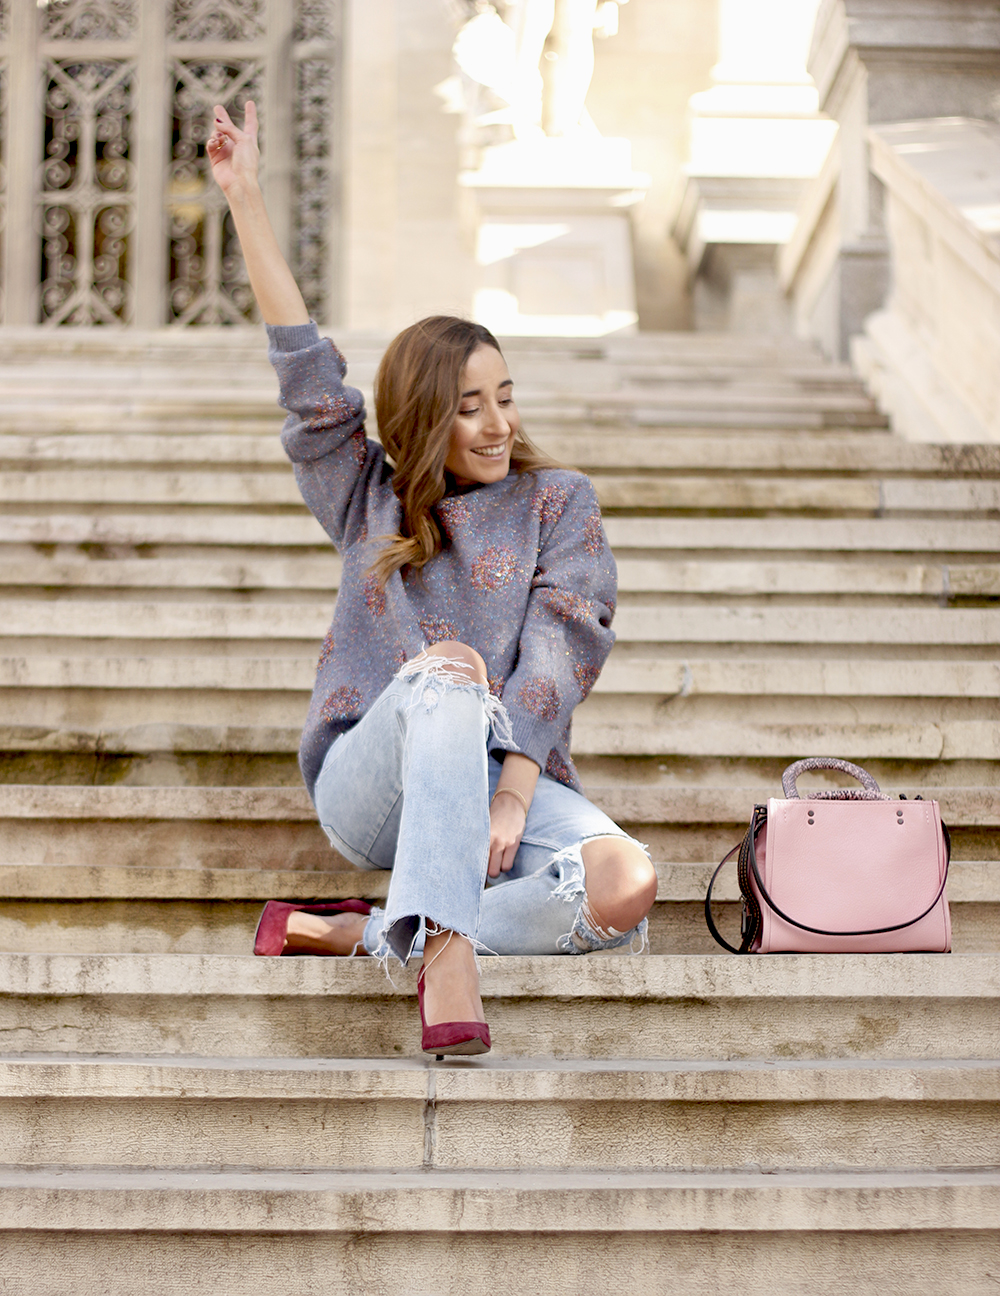 GRAY CHRISTMAS JERSEY ripped jeans pink coaach bag burgundy heels street style fall outfit 20187072